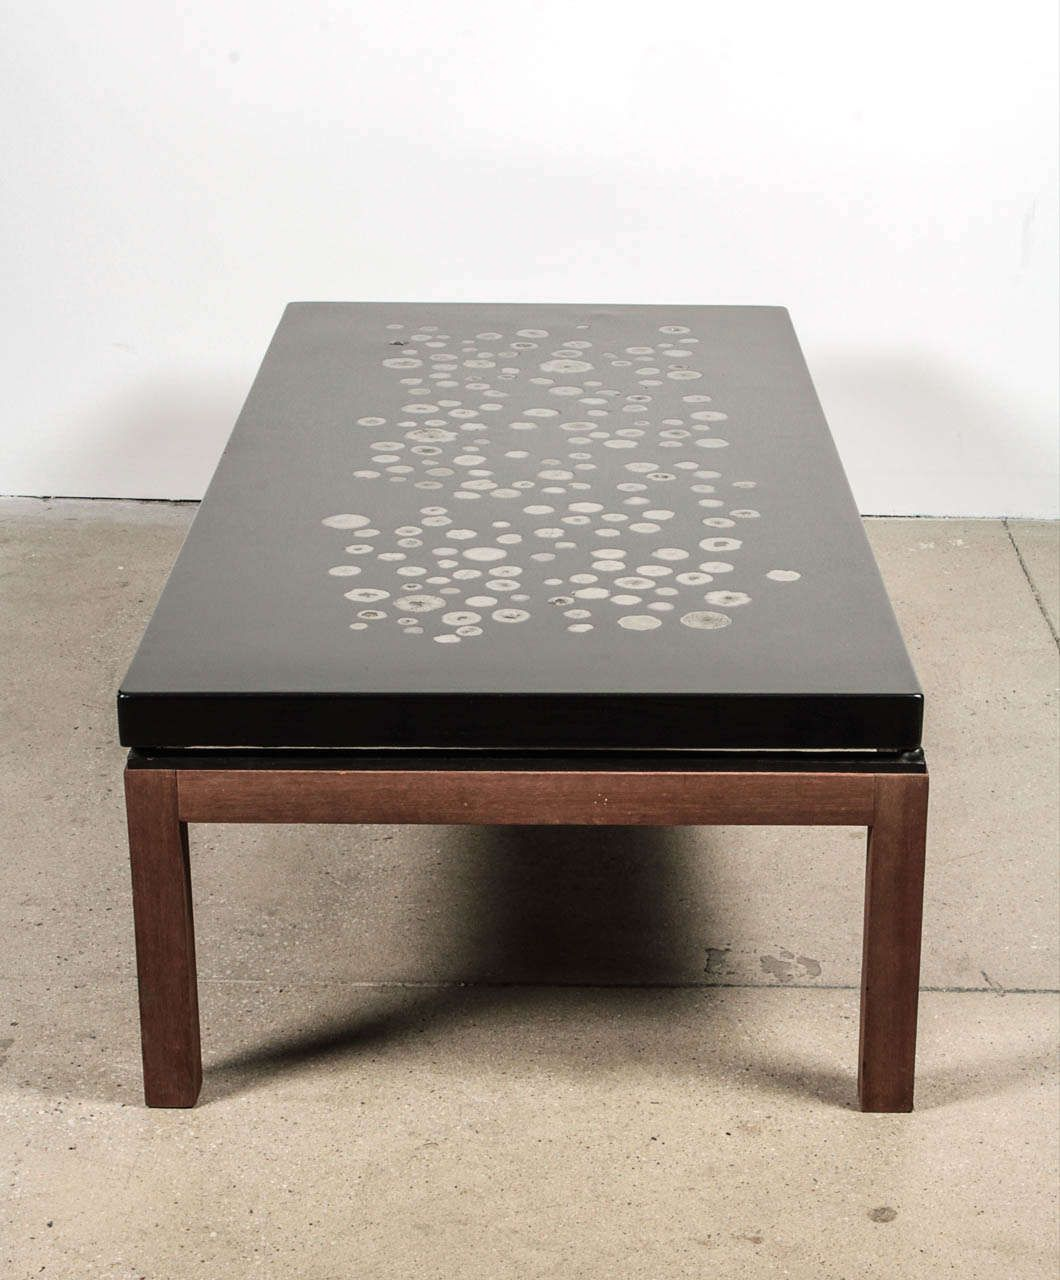 ado chale coffee table in resin inlaid marcasite | resin, coffee